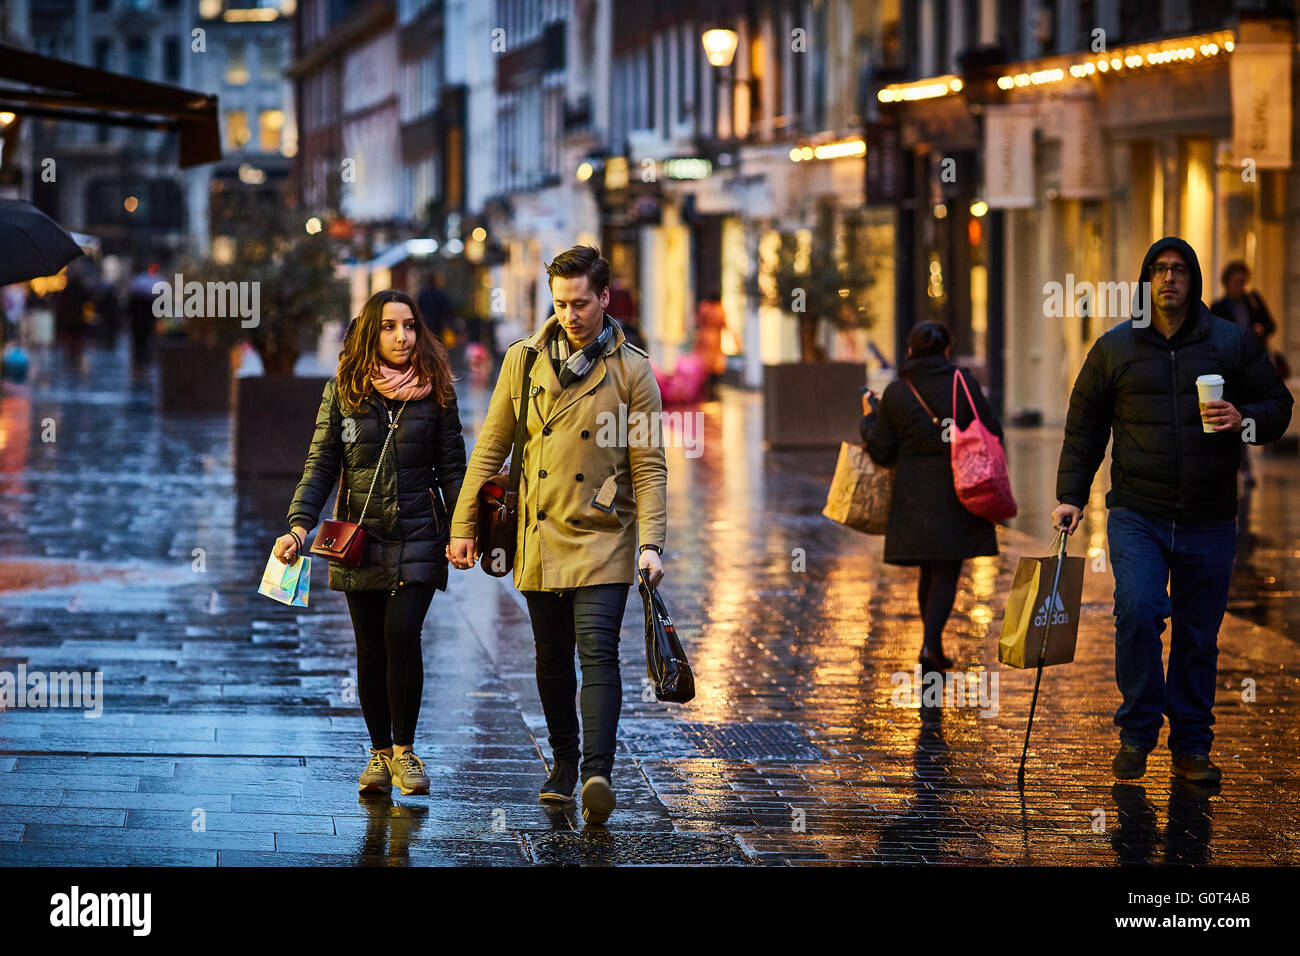 London street at  night and wet raining evening shopper walking - Stock Image